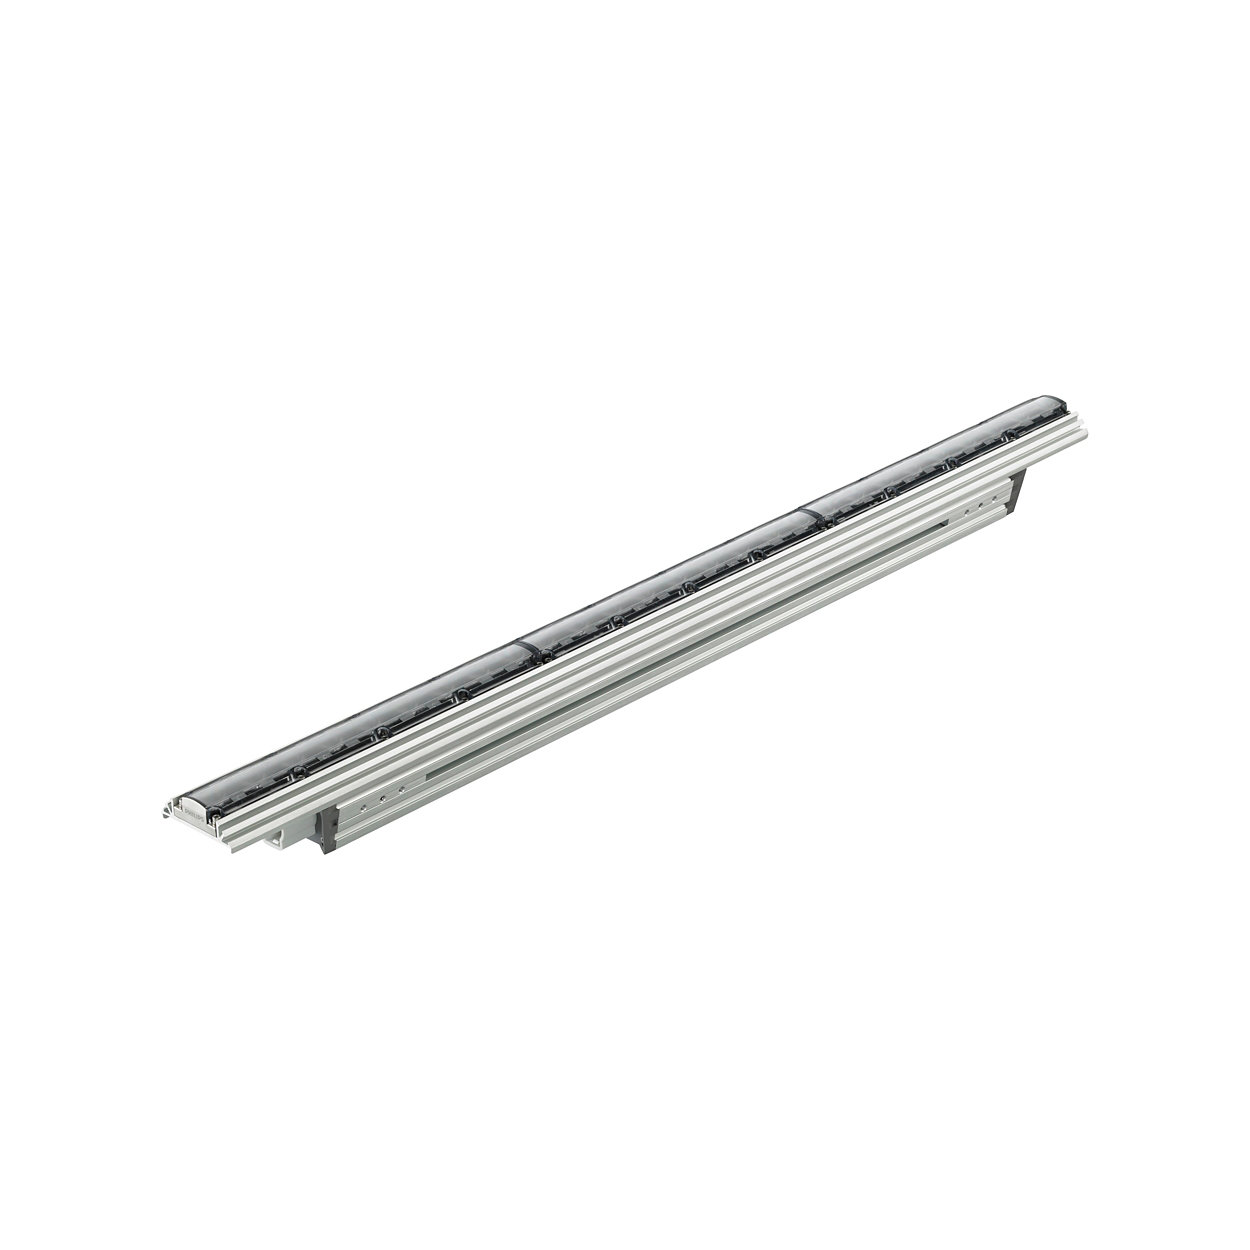 ColorGraze QLX Powercore - Performance linear exterior LED wall grazing fixture with intelligent color light